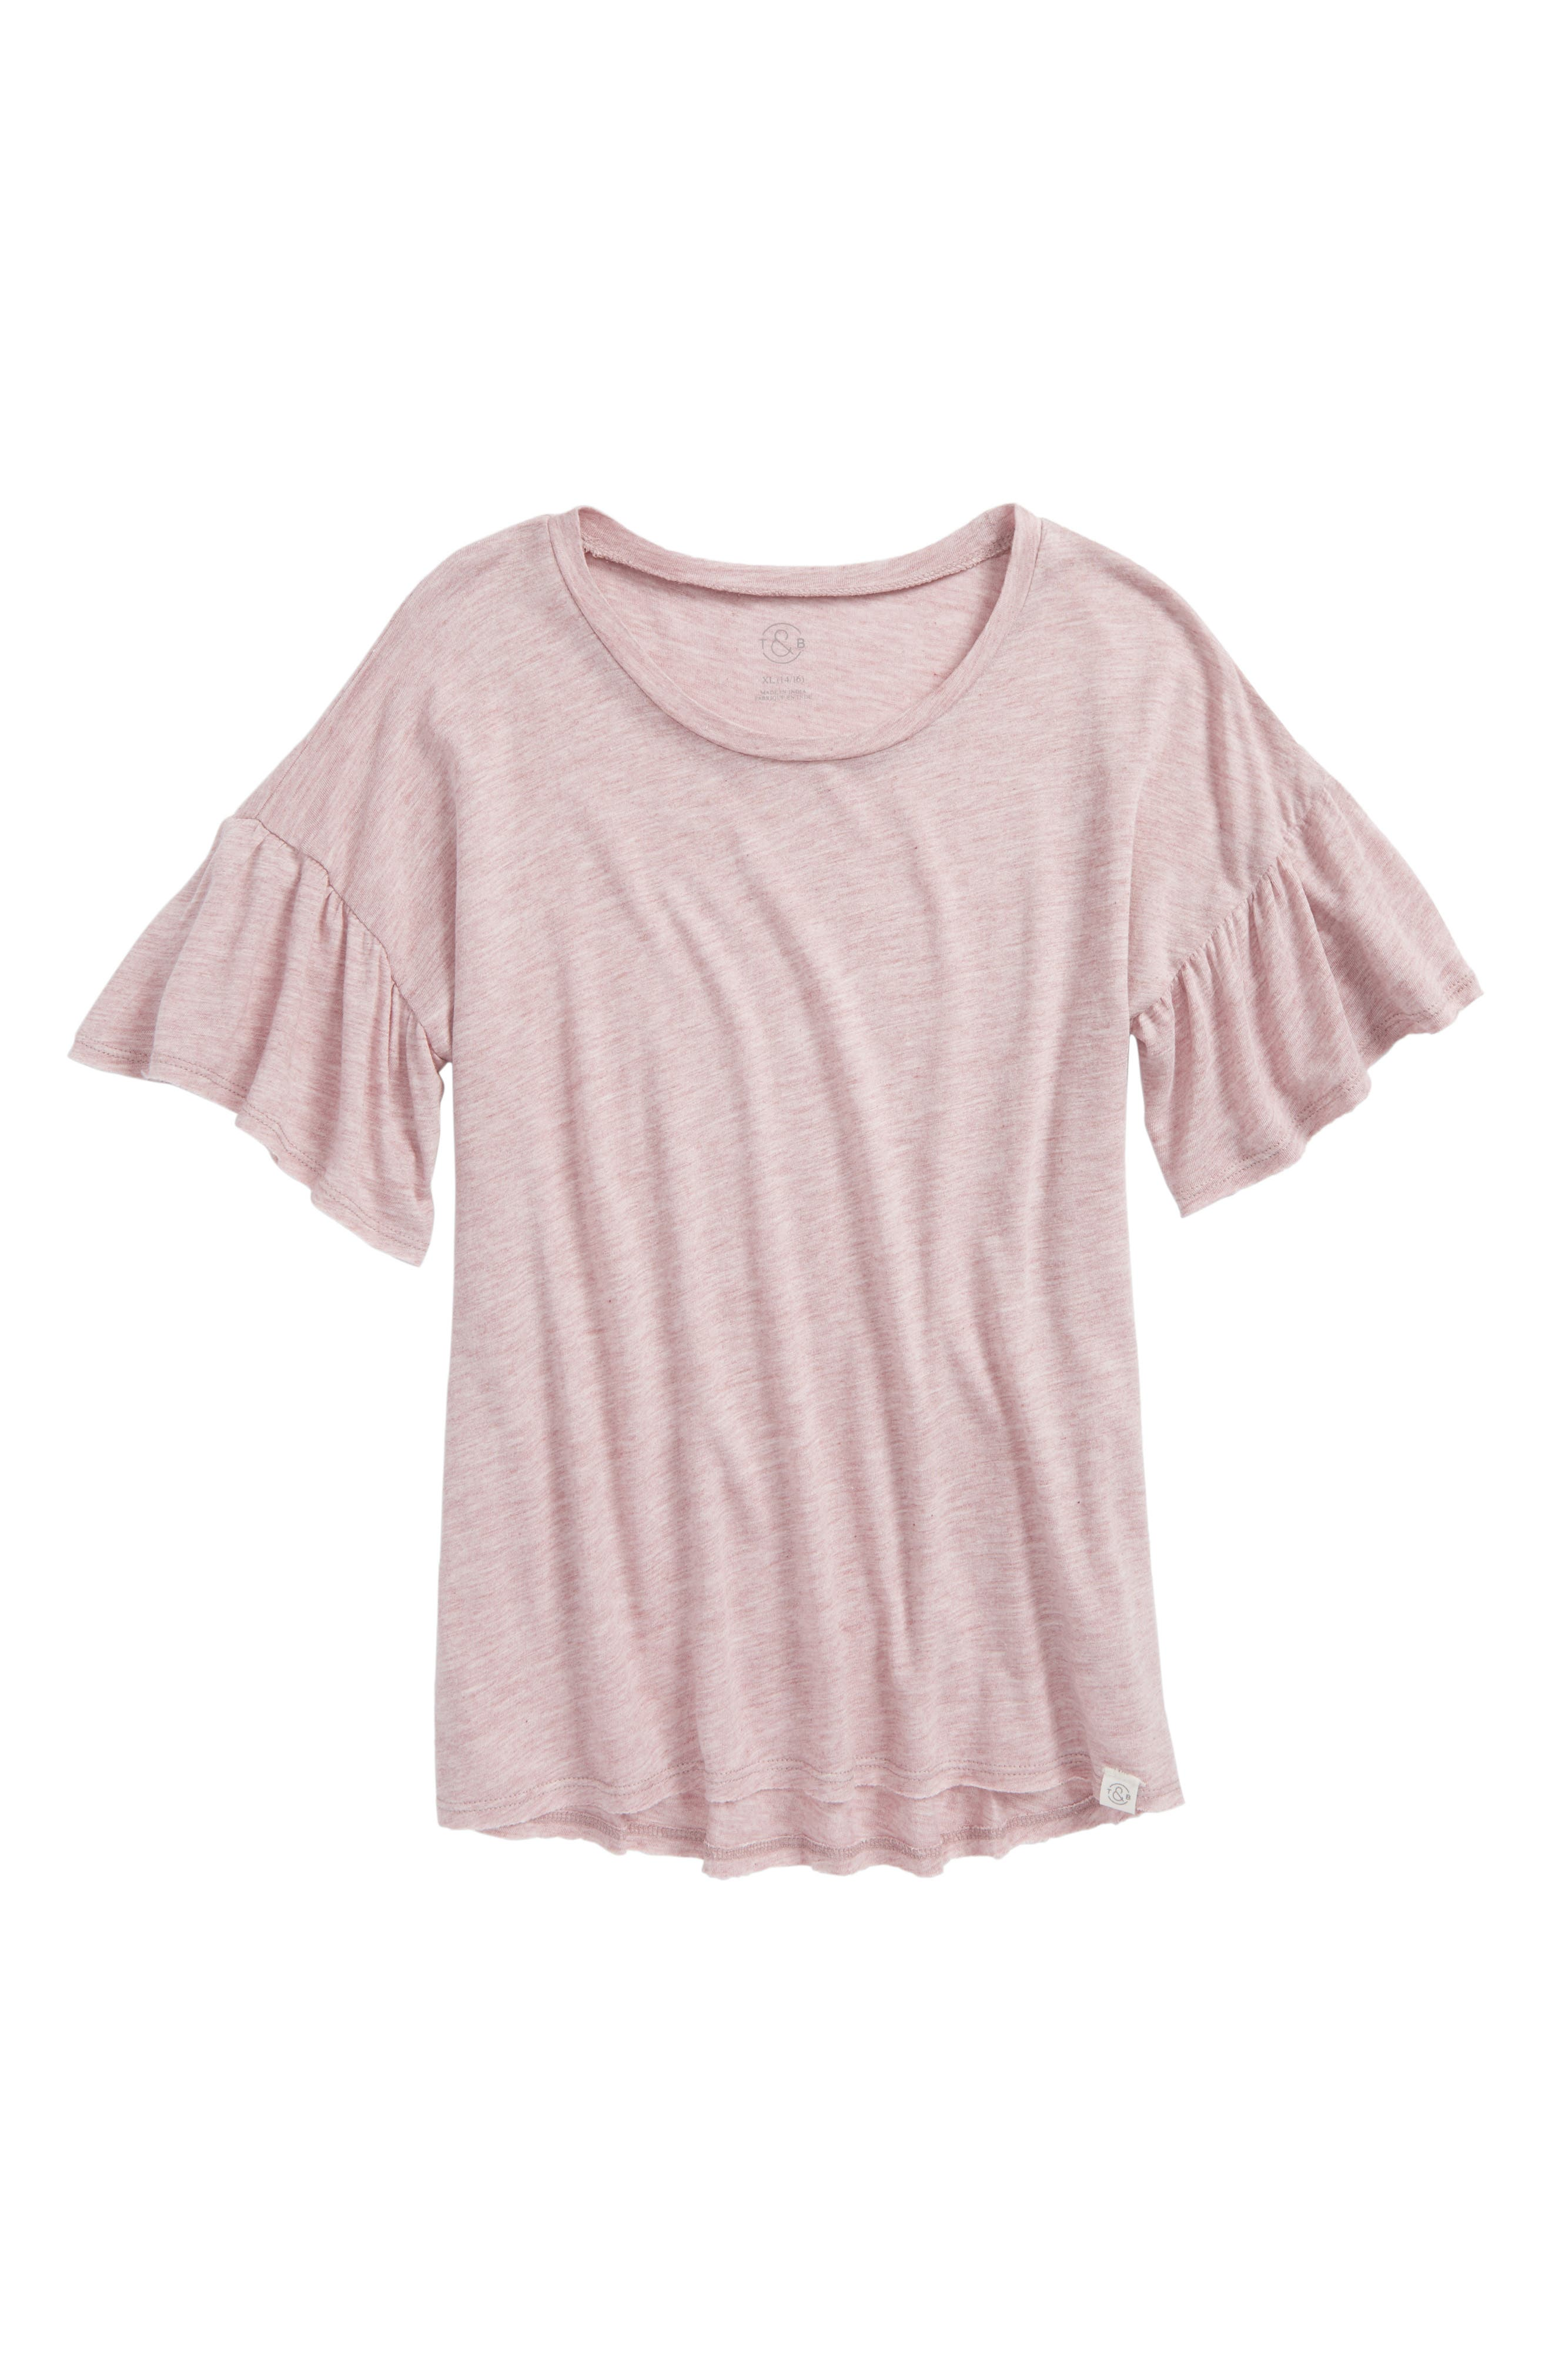 Ruffle Sleeve Tee,                         Main,                         color, Pink Antique